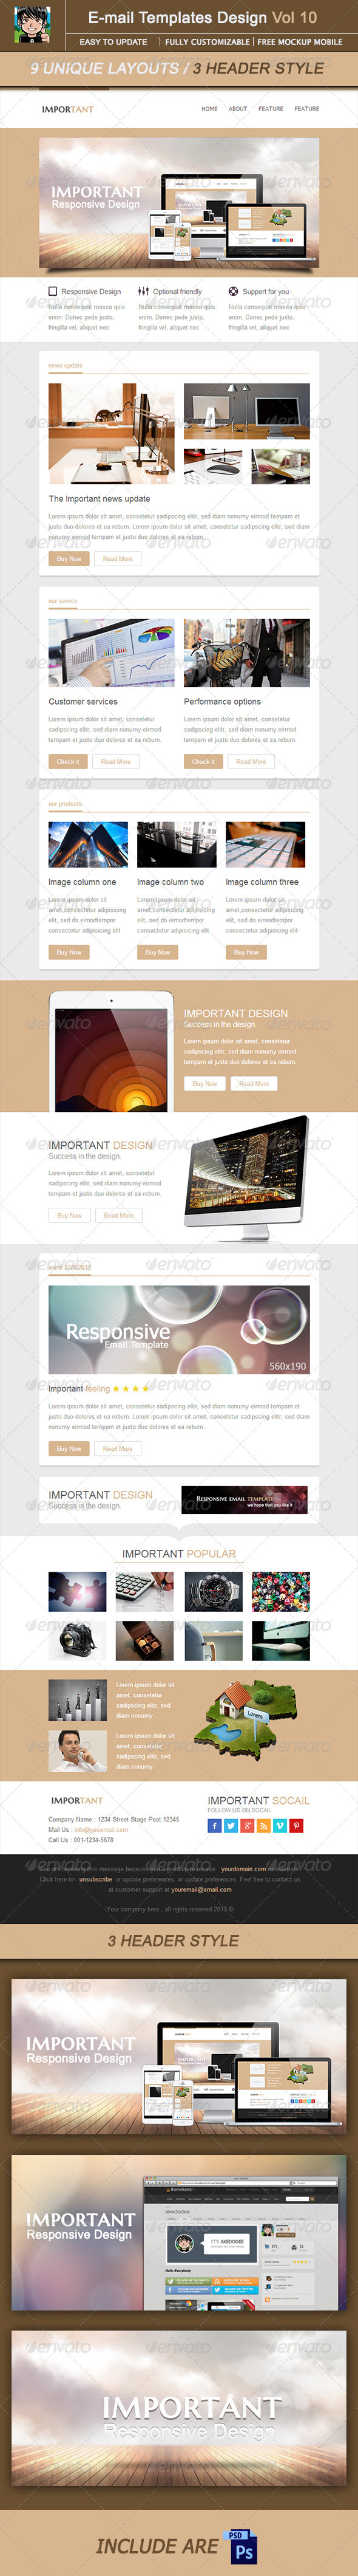 GraphicRiver IMPORTANT-Email Template Design Vol 10 5435052